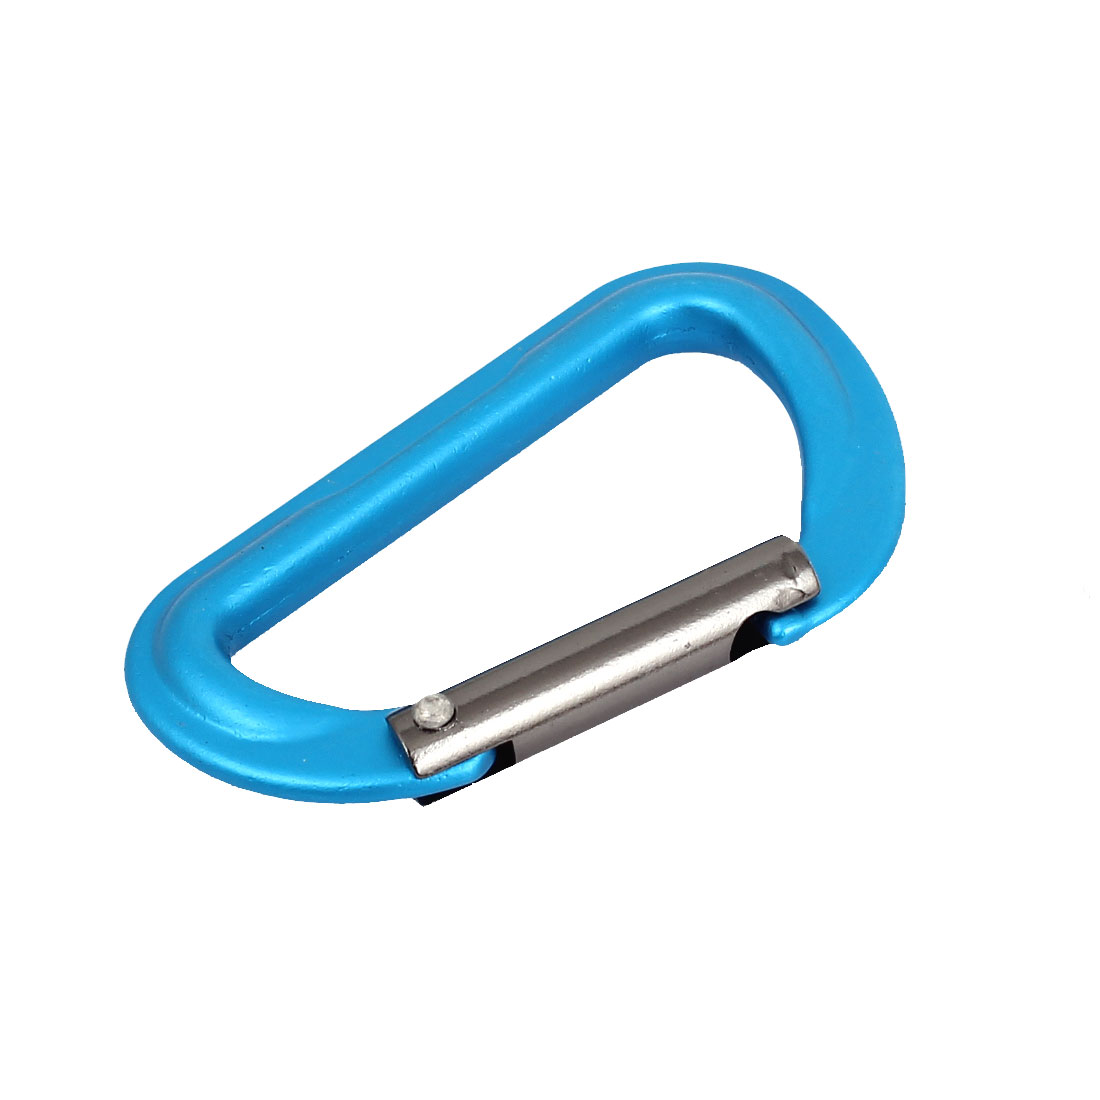 Aluminum D-Ring Travel Camping Hiking Clip Hook Keychain Carabiner Blue